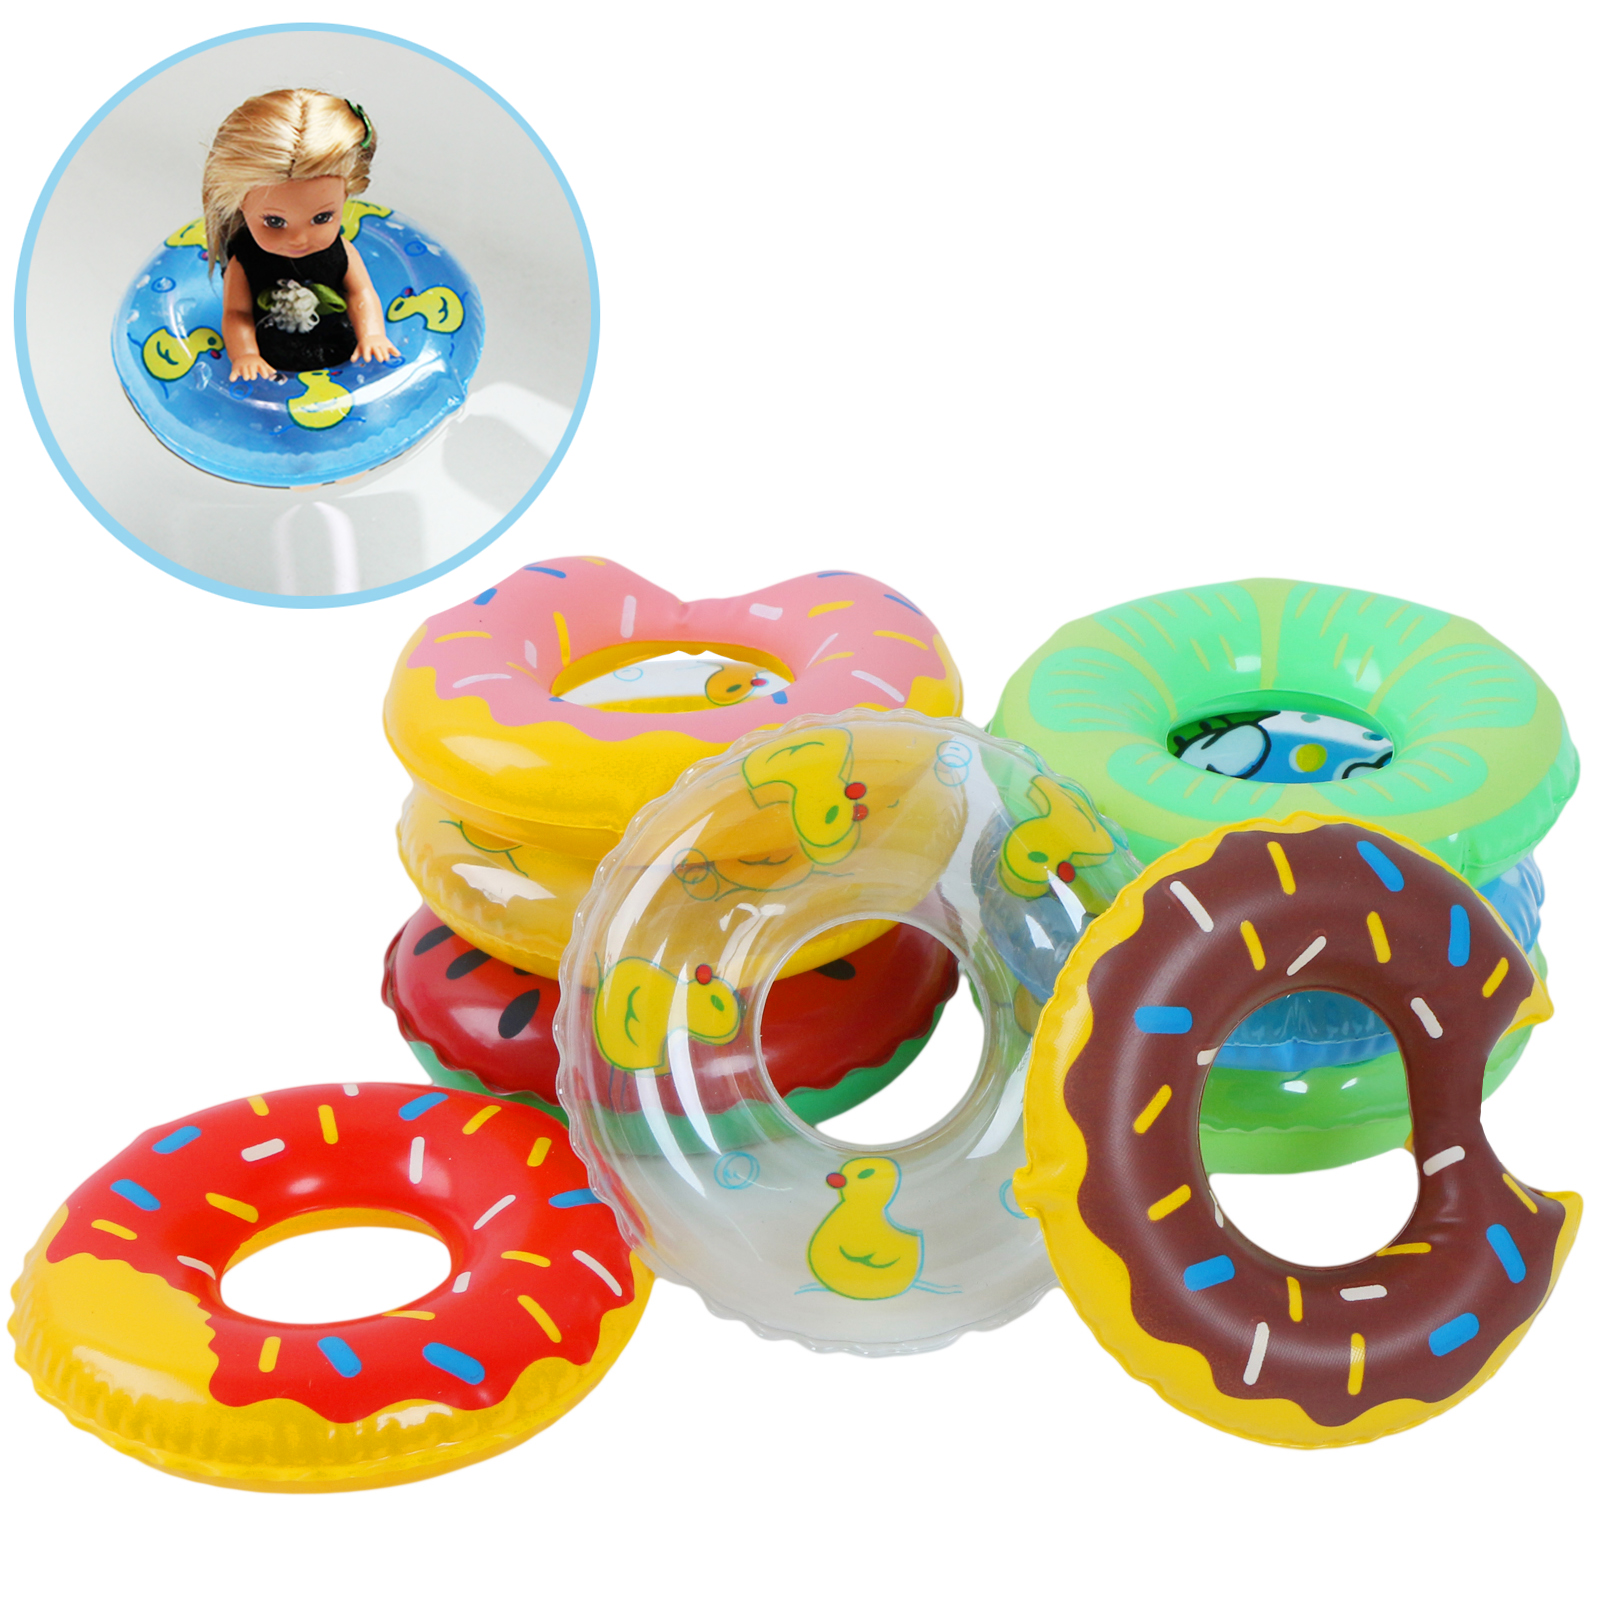 5 Pcs/Lot Fashion Doll Swimming Buoy For Barbie Doll Summer Cute Lifebelt Ring Mixed Style DIY Doll Accessories Toy